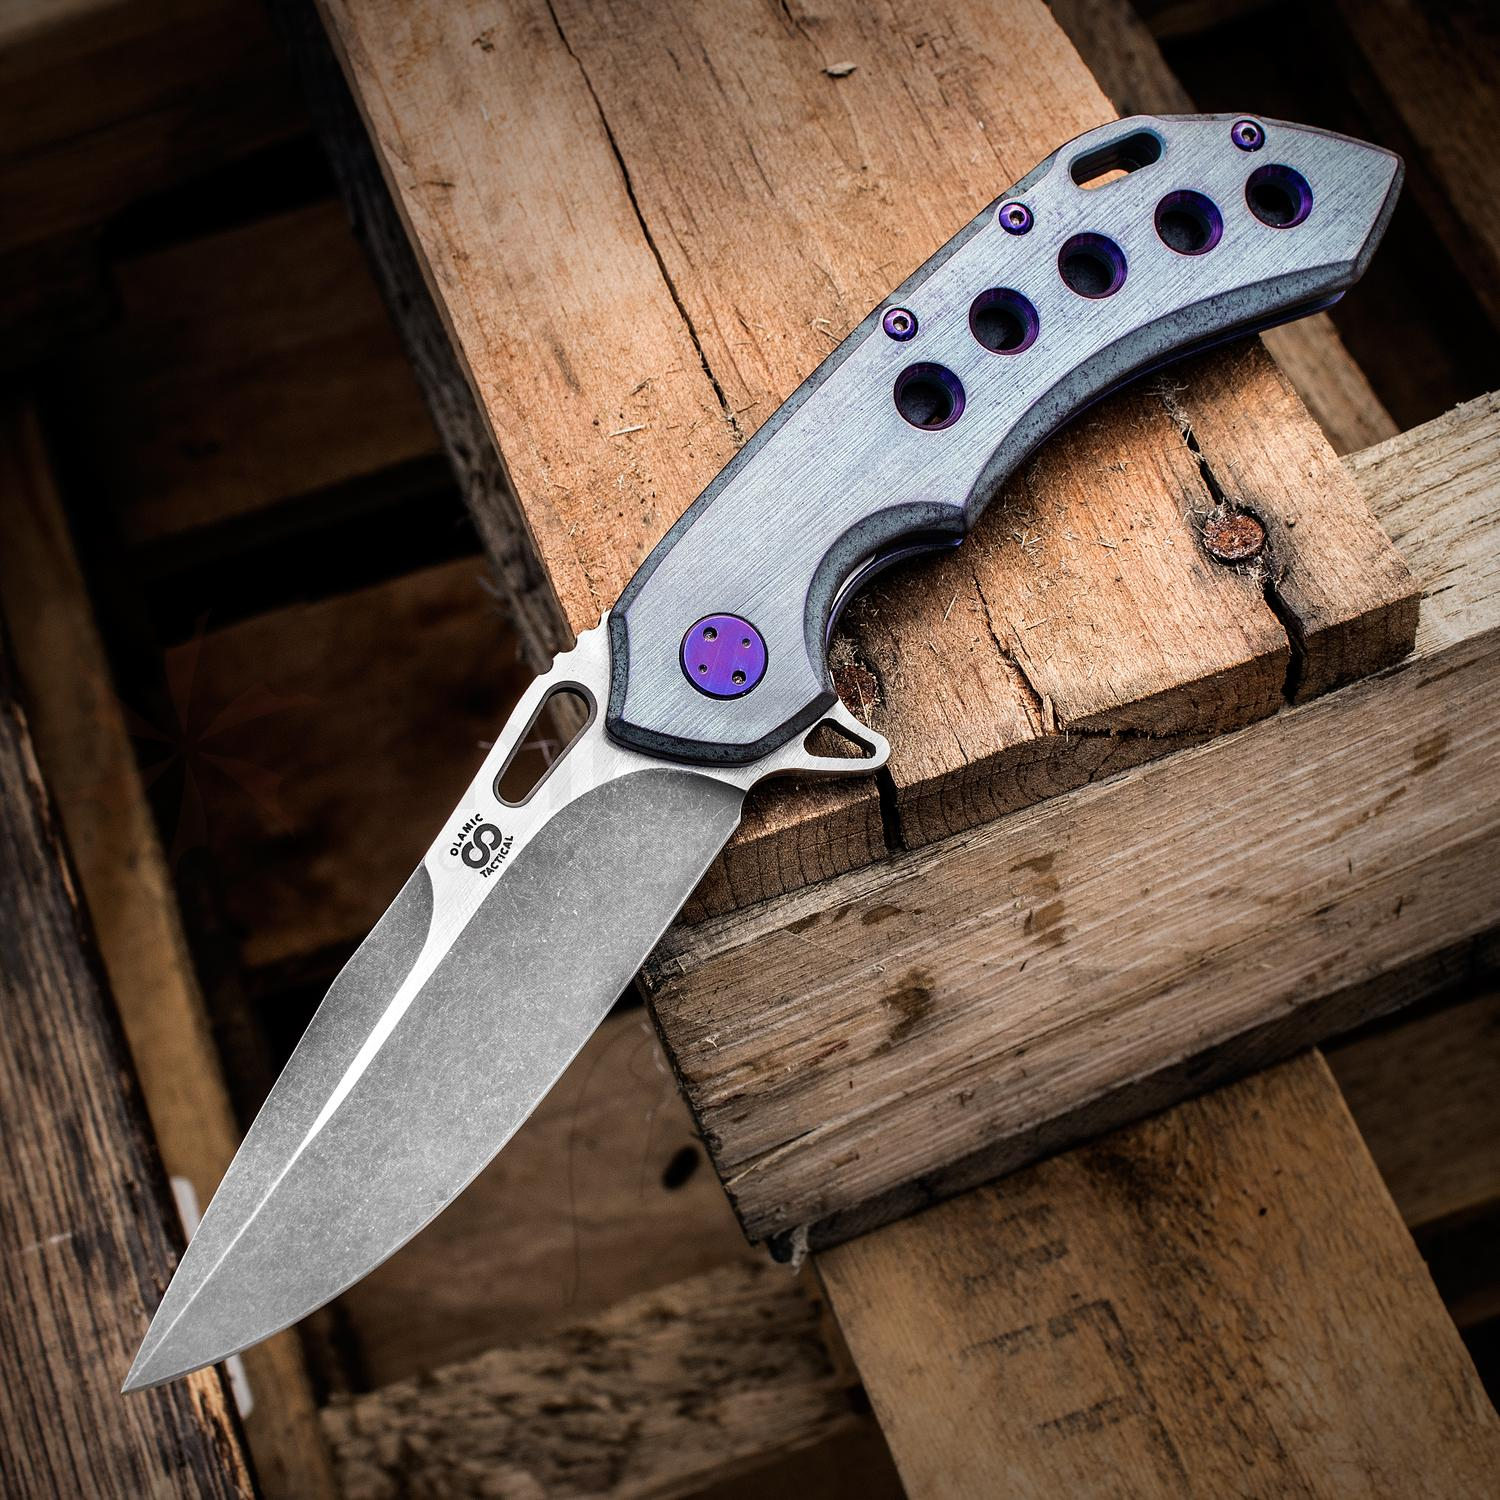 Olamic Cutlery Mid-Tech Wayfarer 247 Flipper 3.45 inch Two-Tone M390 Blade, Kinetic Sky Titanium Handles with Hole Pattern